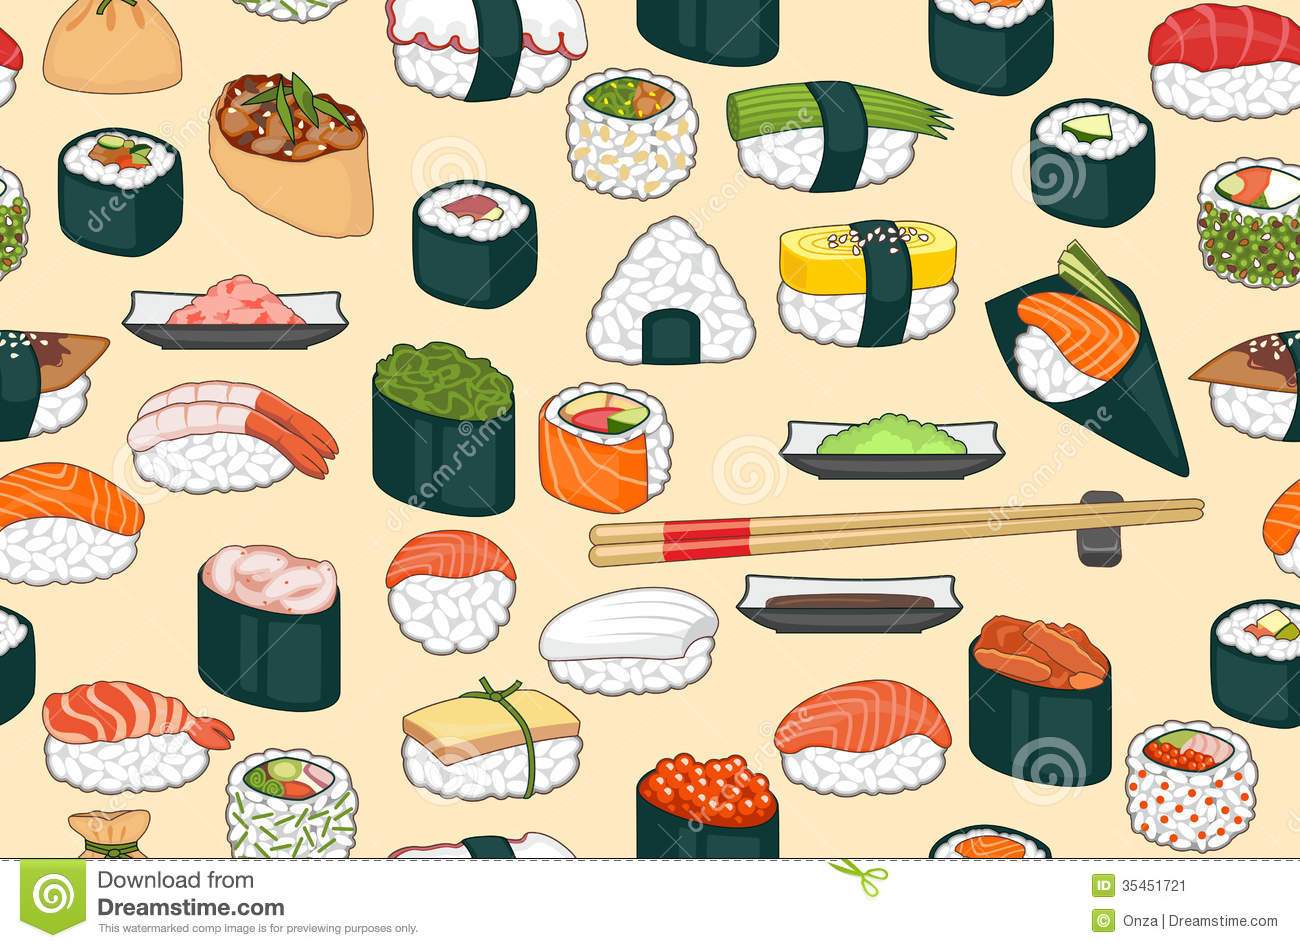 The BEST Tips When Eating Sushi